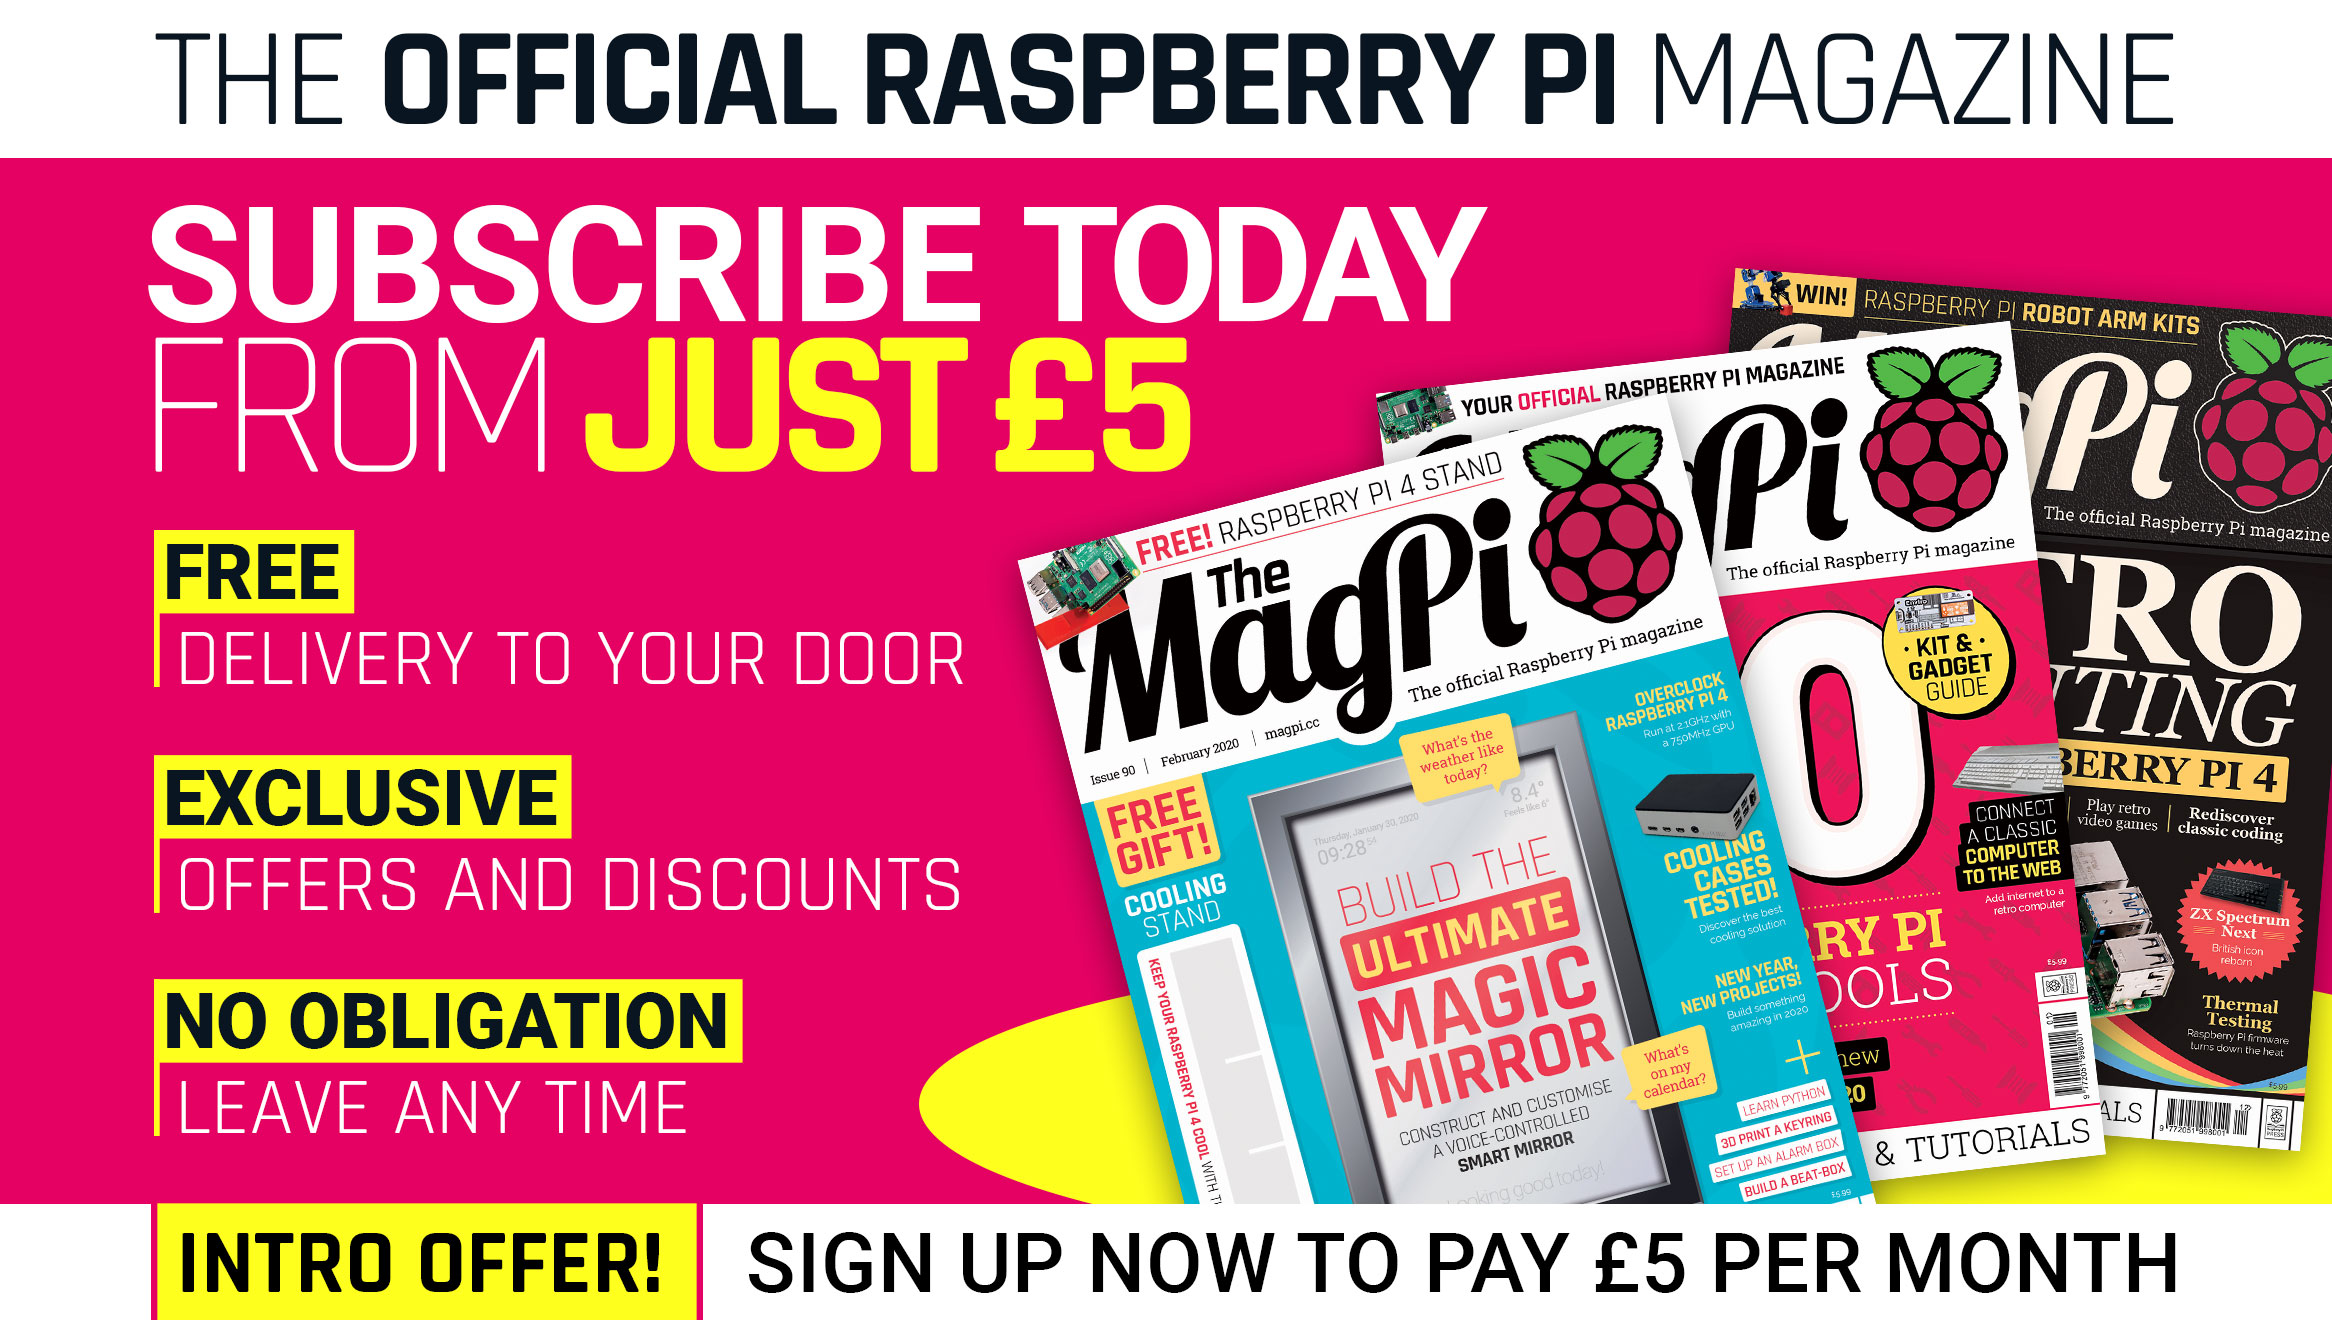 The MagPi issue 90 cover